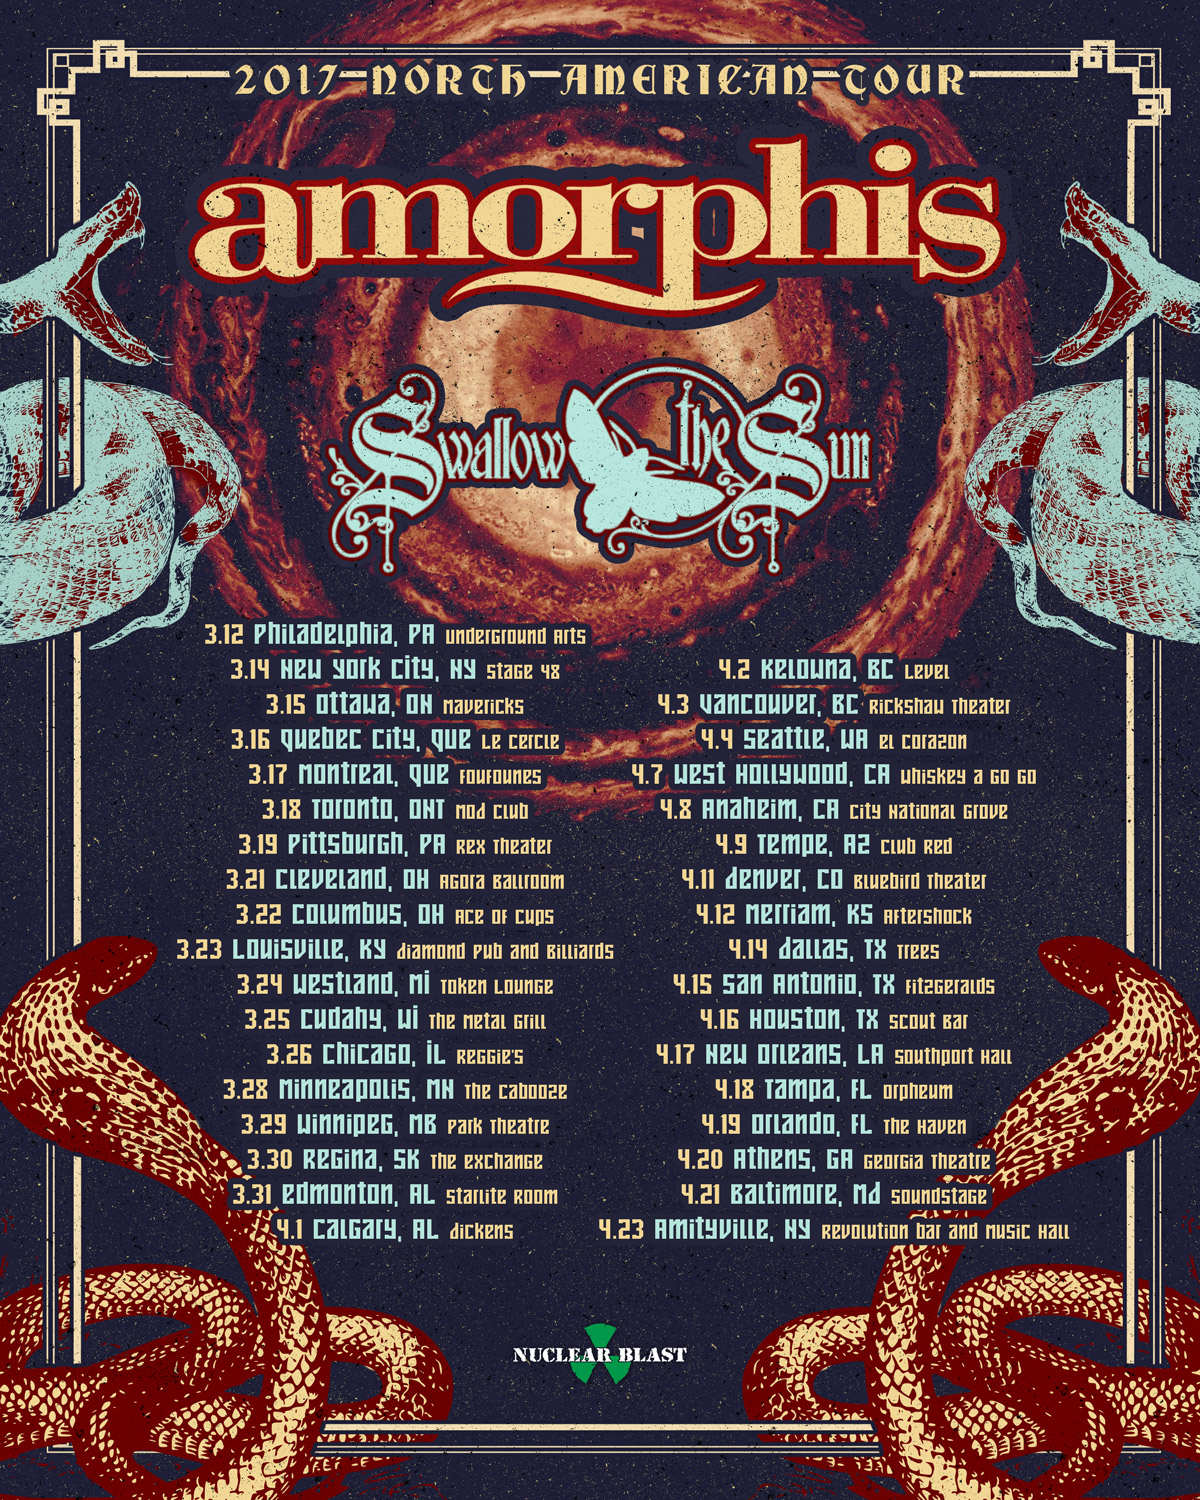 Amorphis to tour North America with Swallow TheSun